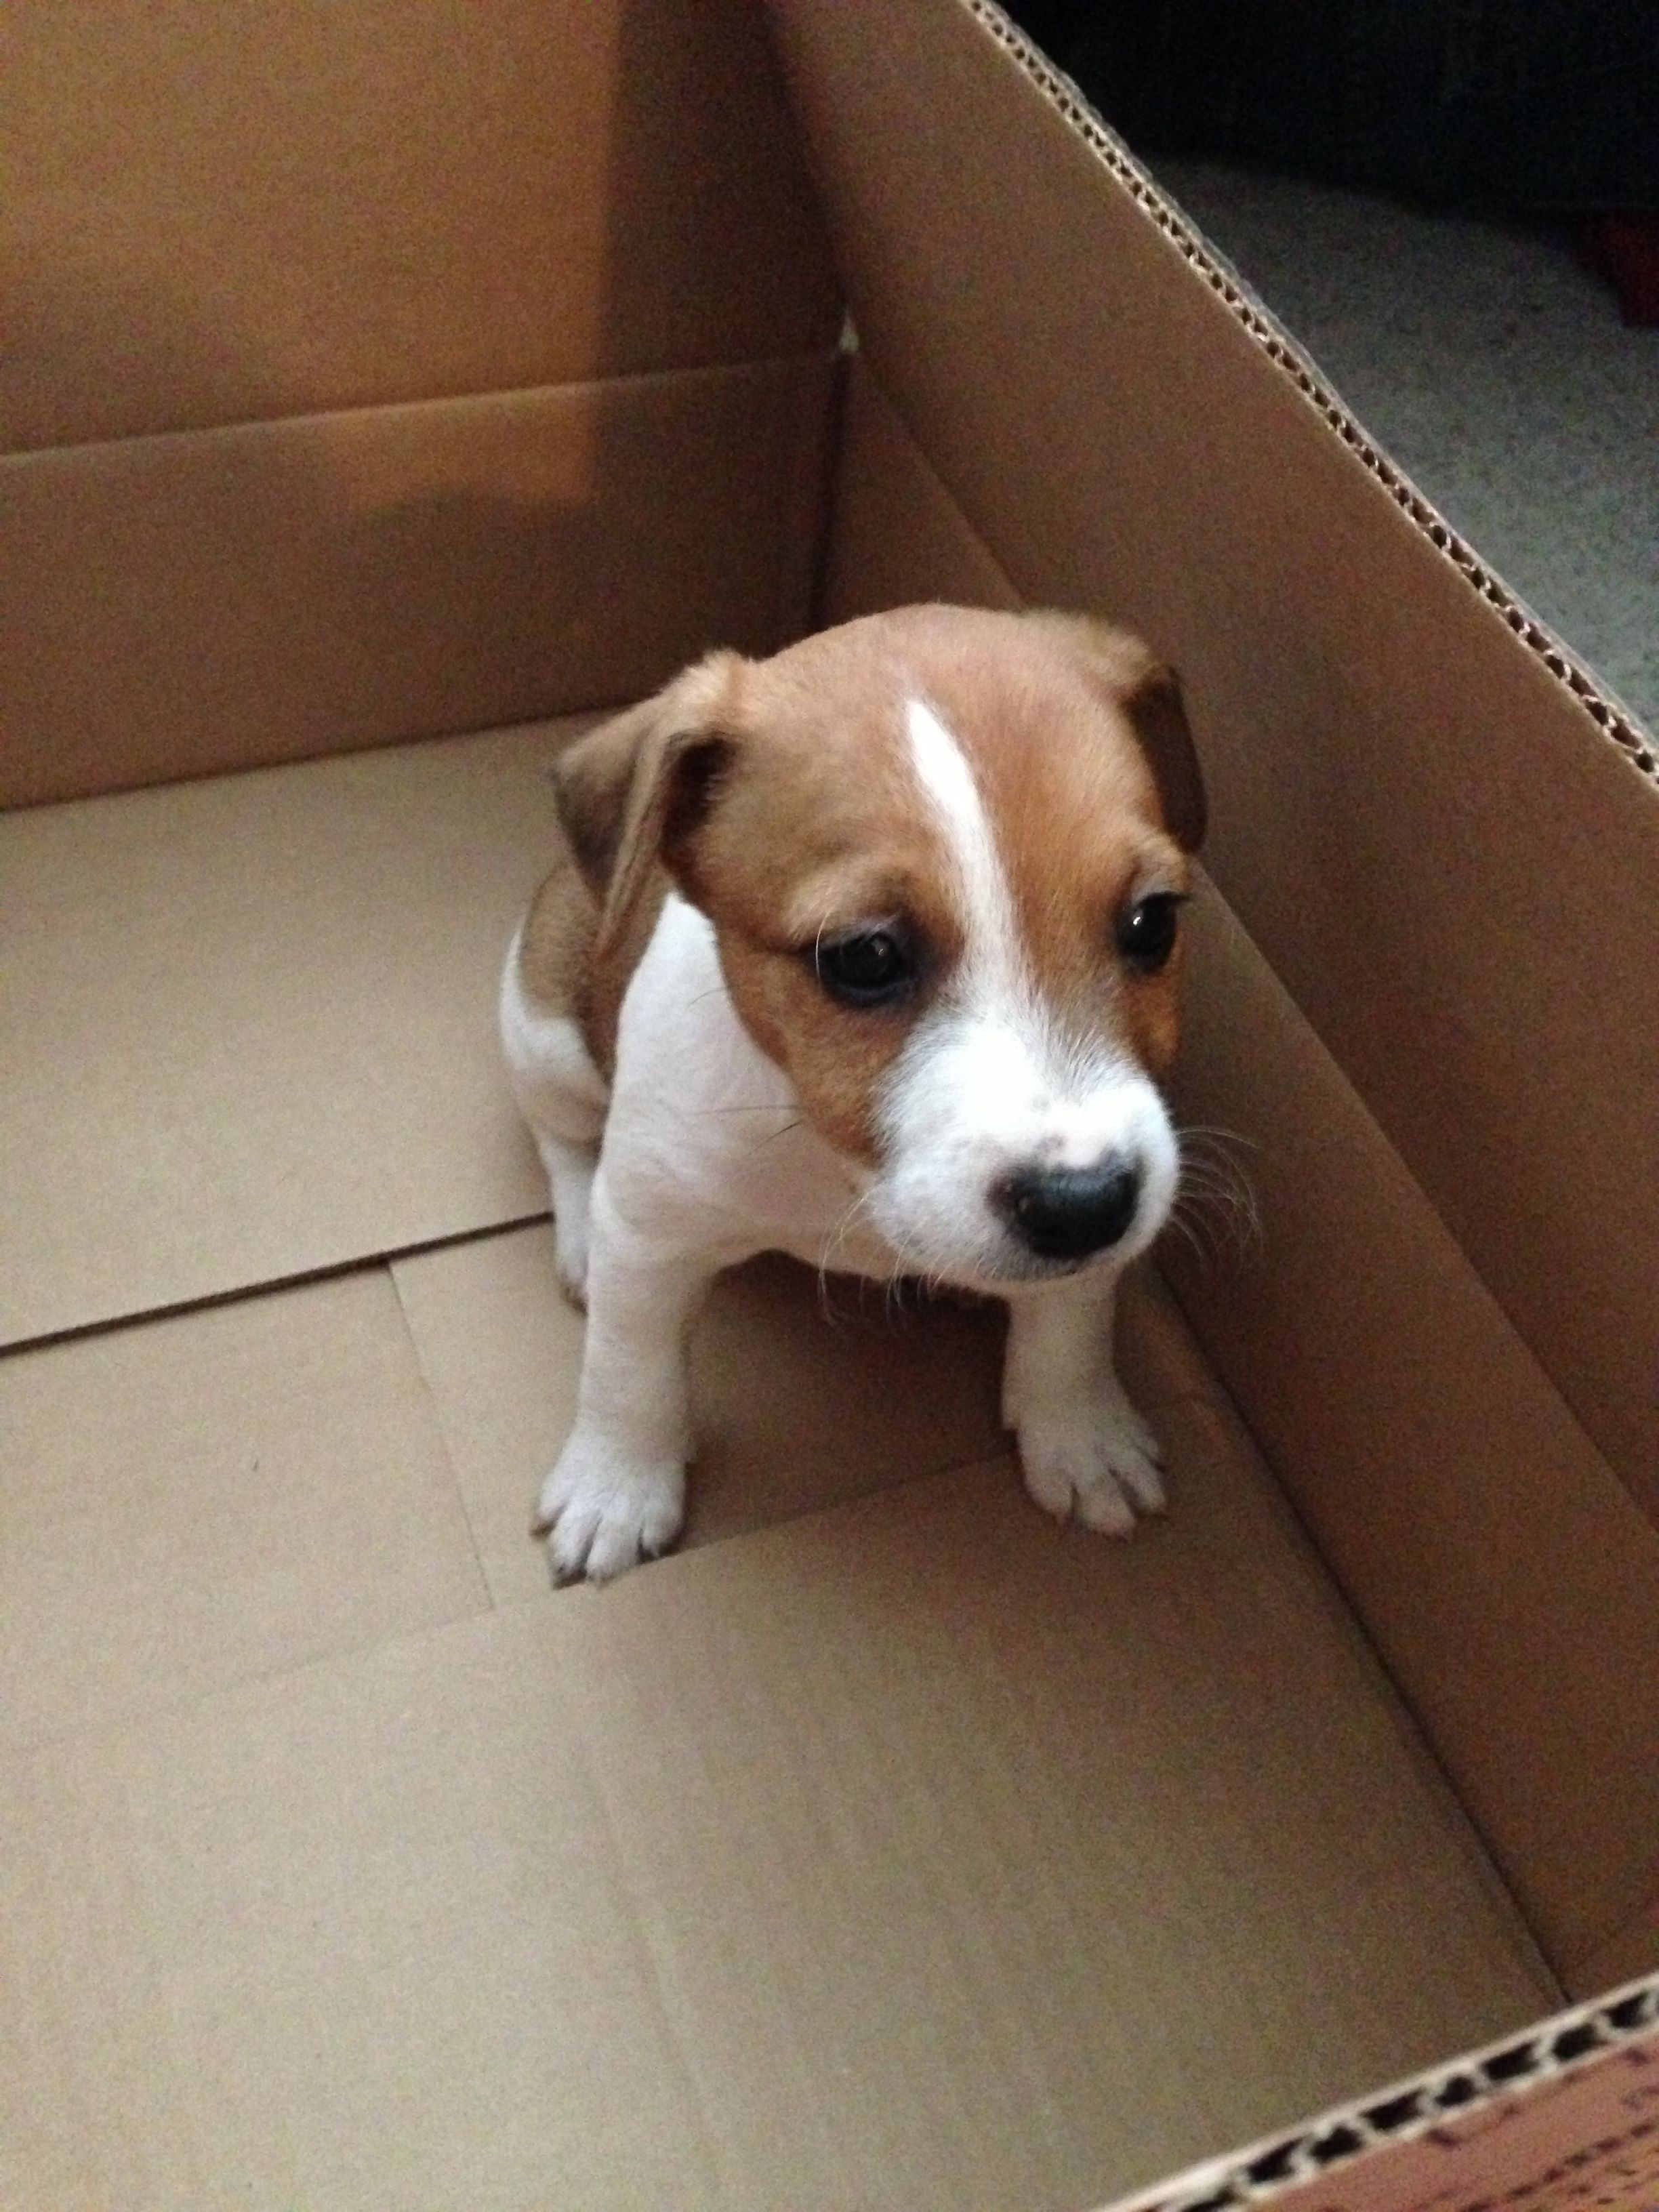 This Is What My Baby Looked Like Jack Russell Terrier Puppies Jack Russell